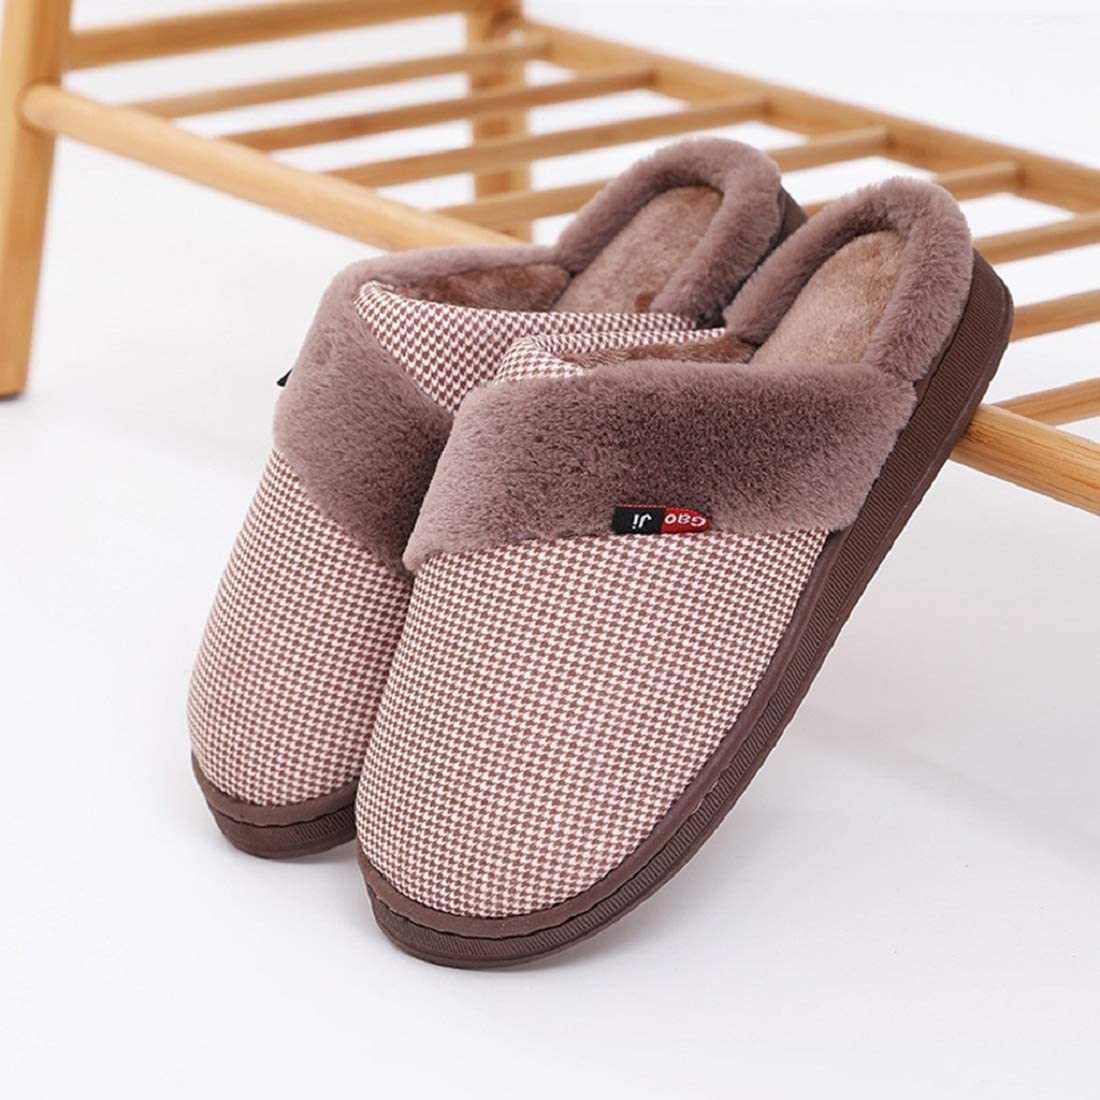 Slippers for Women Striped Warm Memory Foam Slip on Flock Warm House Shoes Mens Cotton Comfortable Bedroom Shoes Red